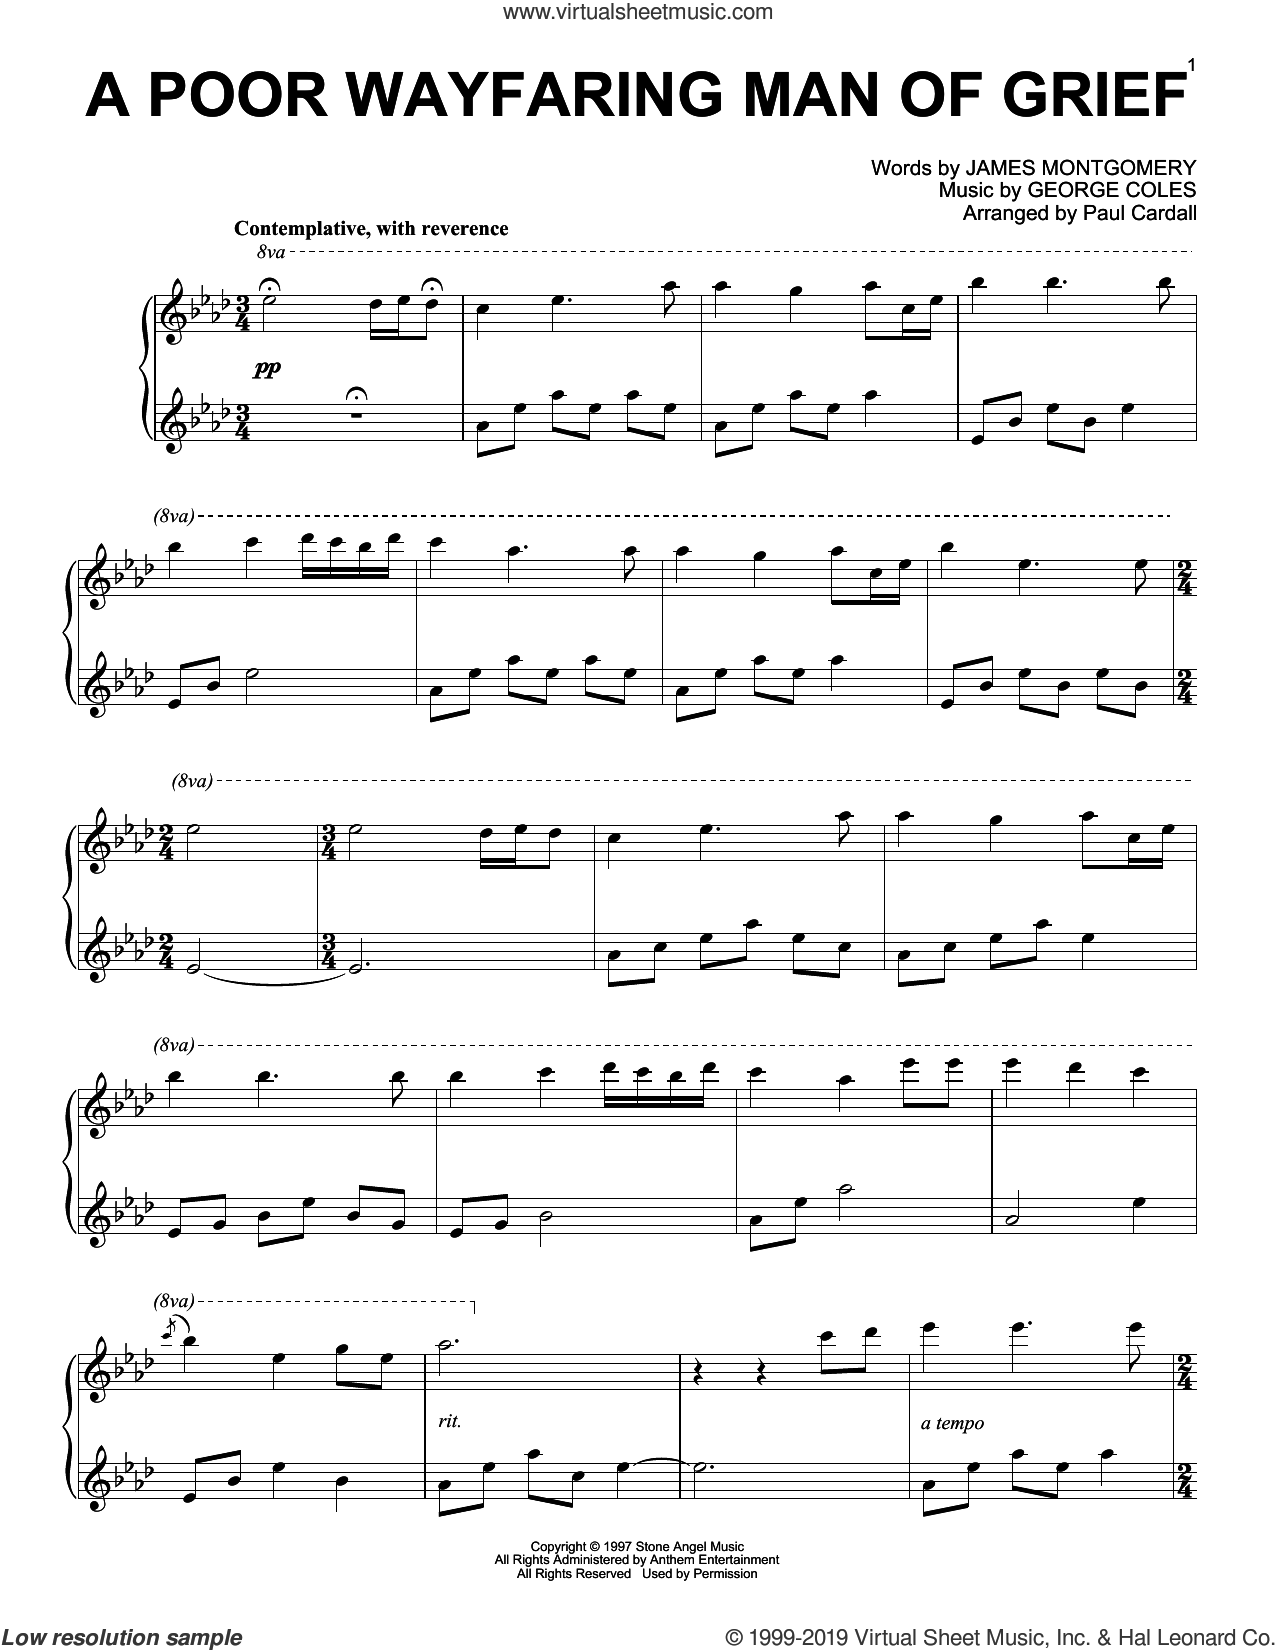 A Poor Wayfaring Man Of Grief (arr. Paul Cardall) sheet music for piano solo by James Montgomery, Paul Cardall and George Coles, intermediate skill level